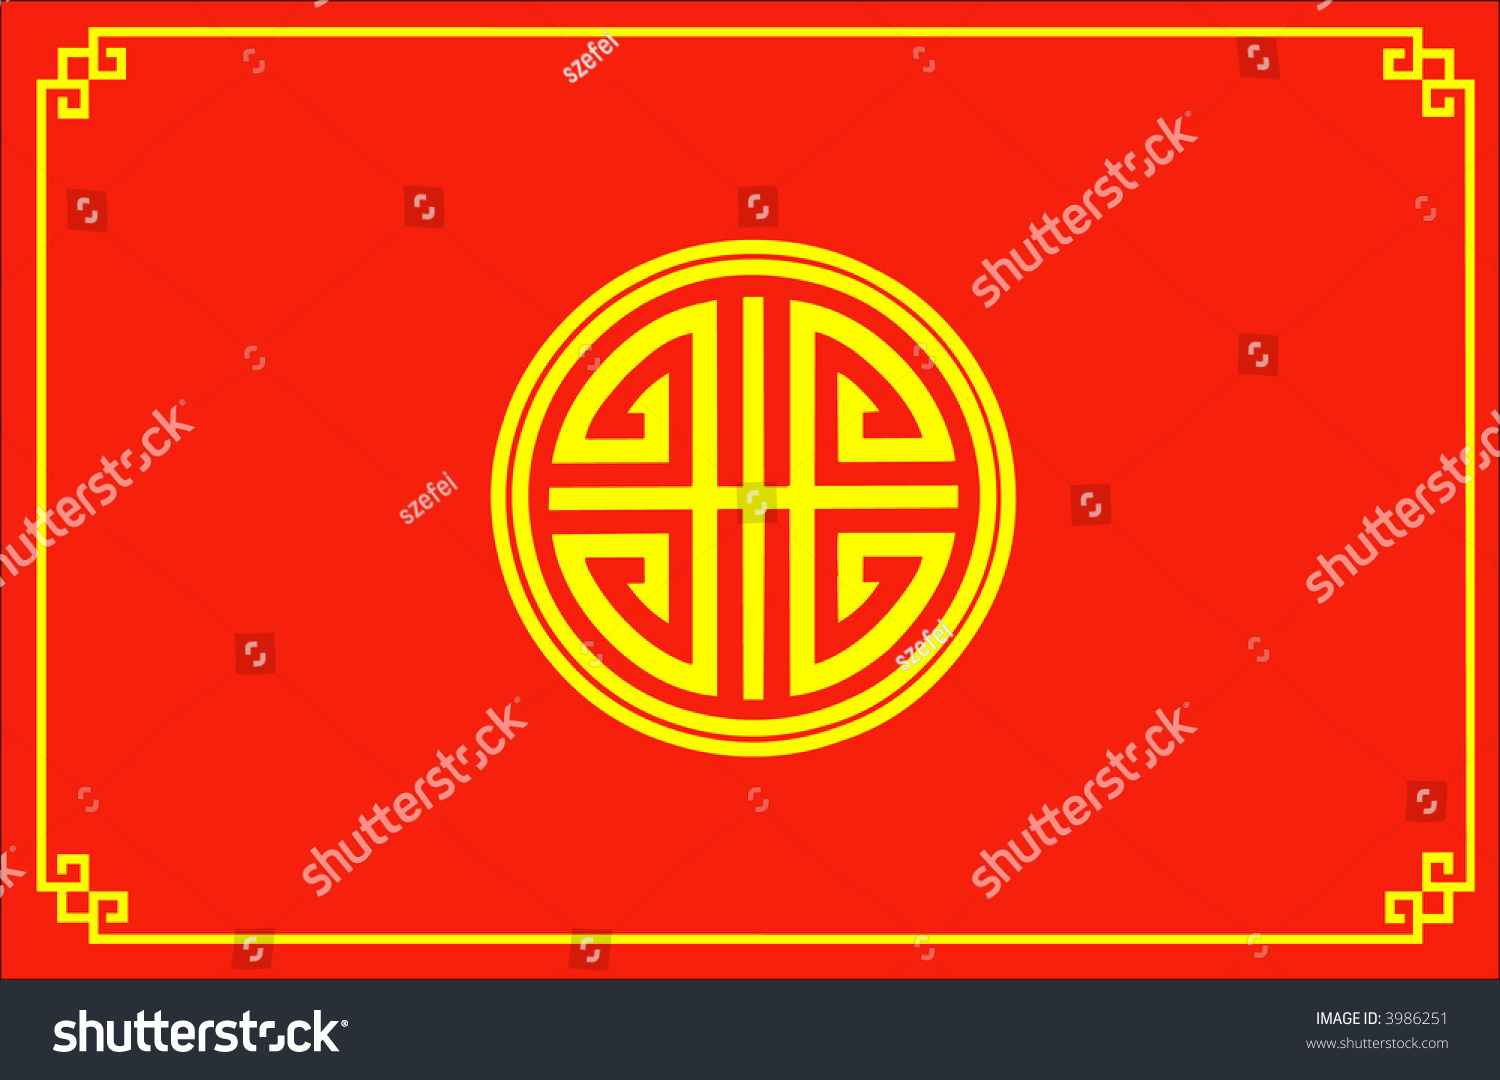 chinese feng shui symbol stock vector illustration 3986251 shutterstock. Black Bedroom Furniture Sets. Home Design Ideas